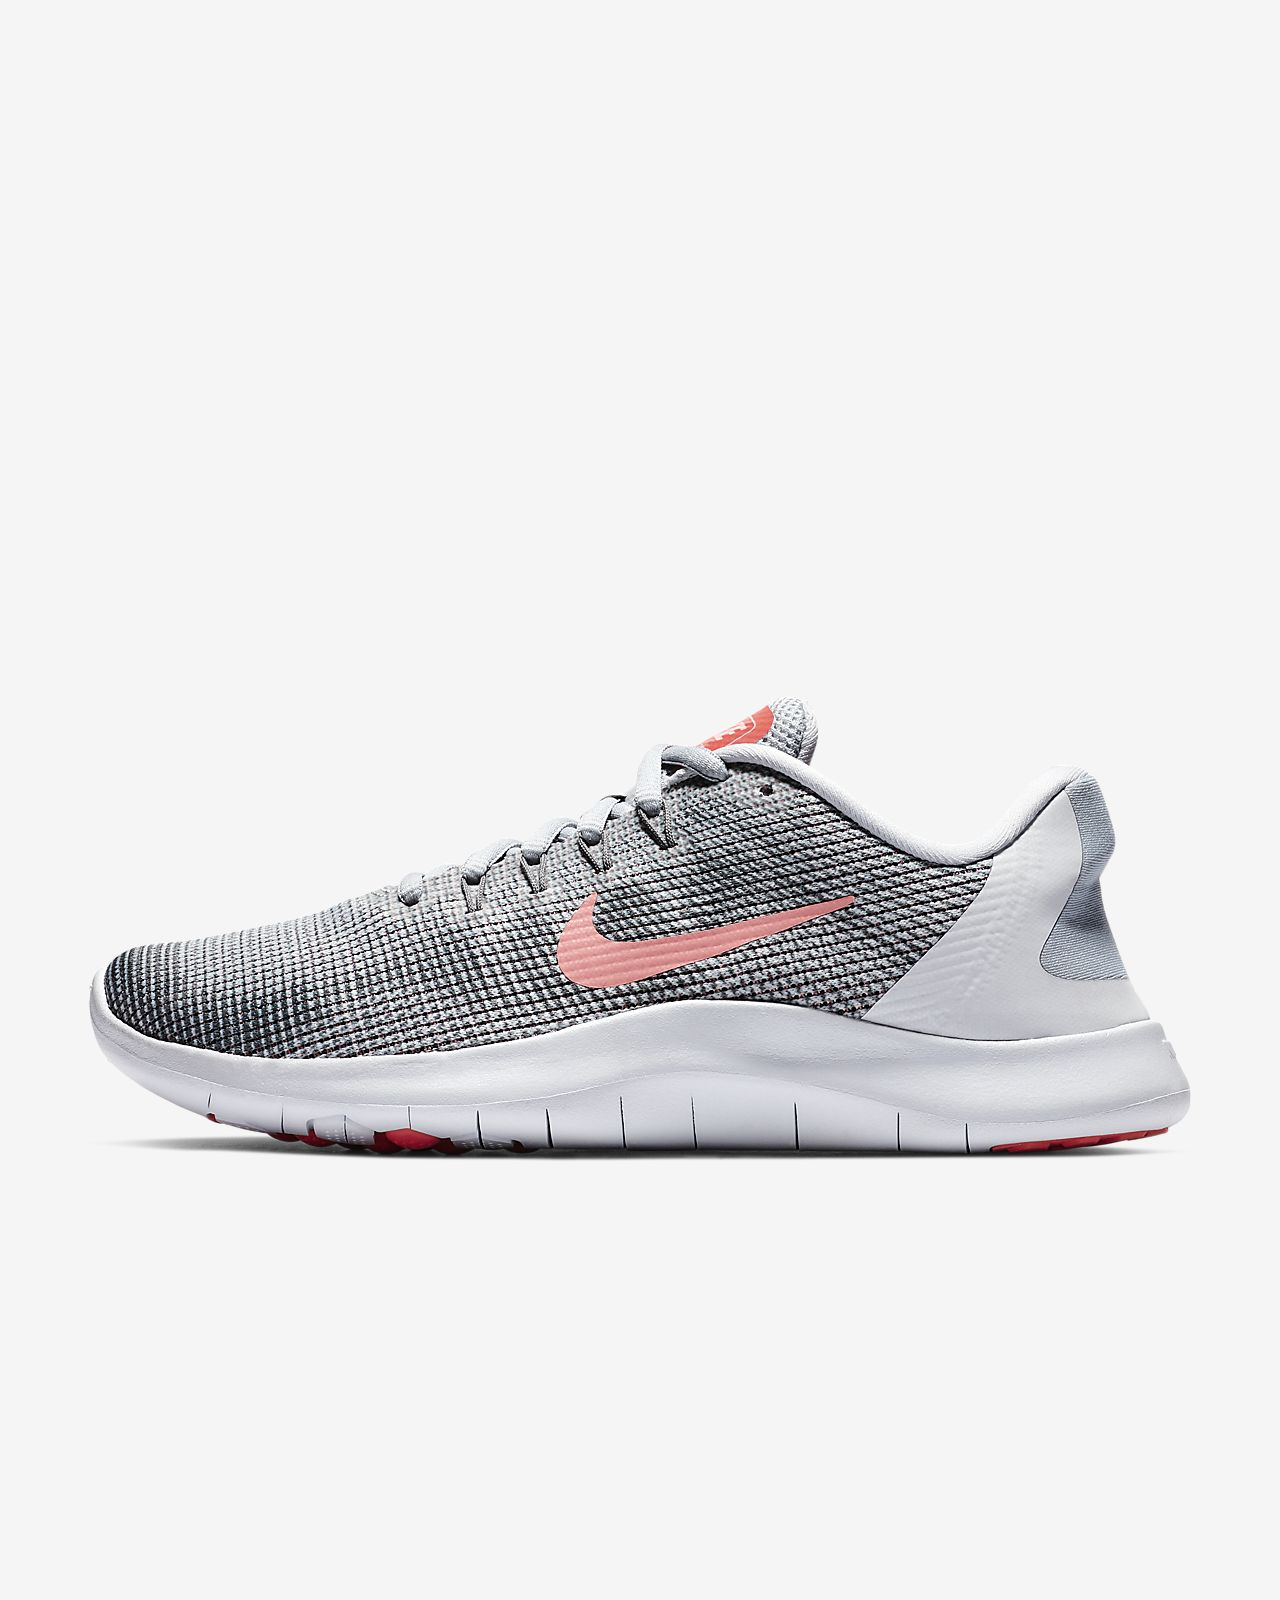 new arrivals 50cd7 7c287 Women s Running Shoe. Nike Flex RN 2018